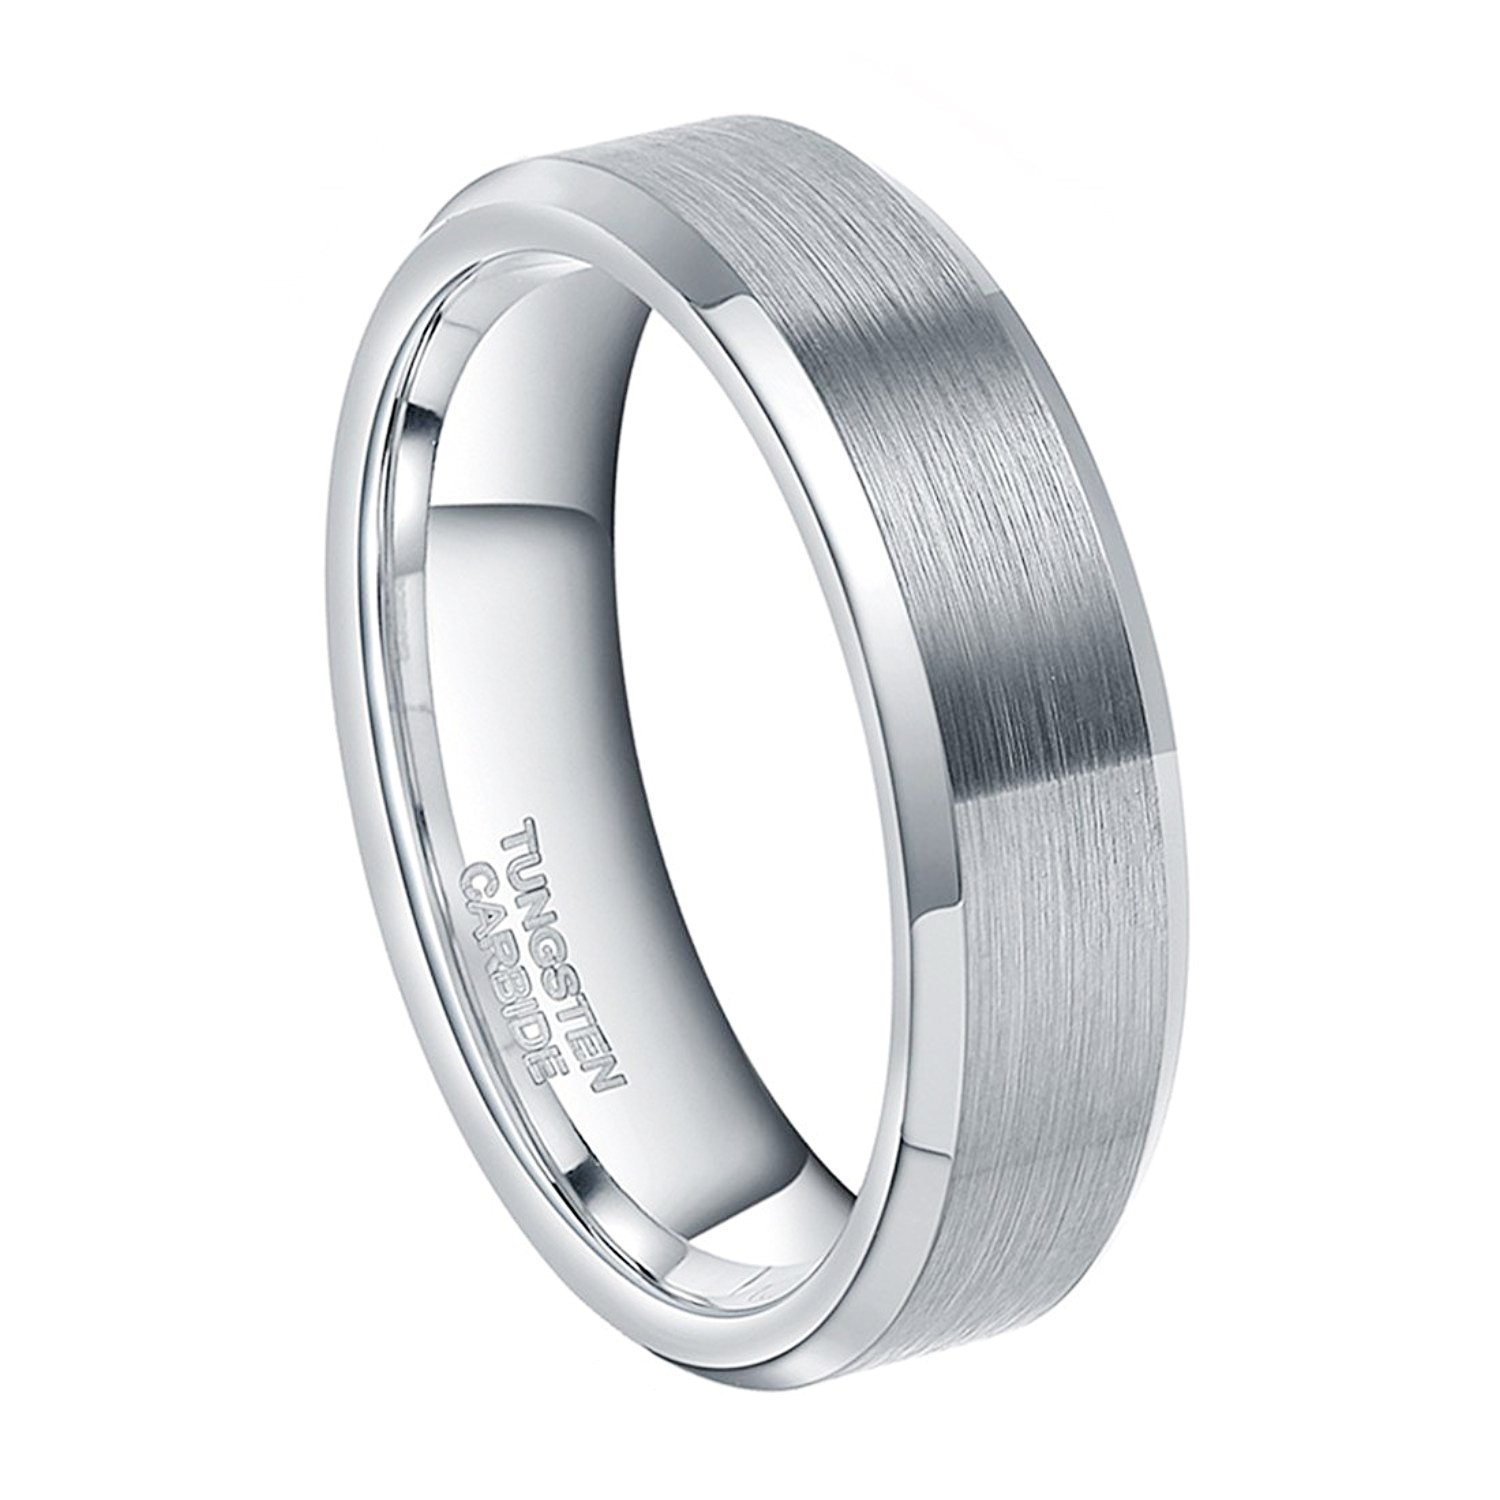 4mm 6mm 8mm Silver Tungsten Rings Matte Brushed Beveled Edge Comfort Fit Simple Wedding Band Size 4-15